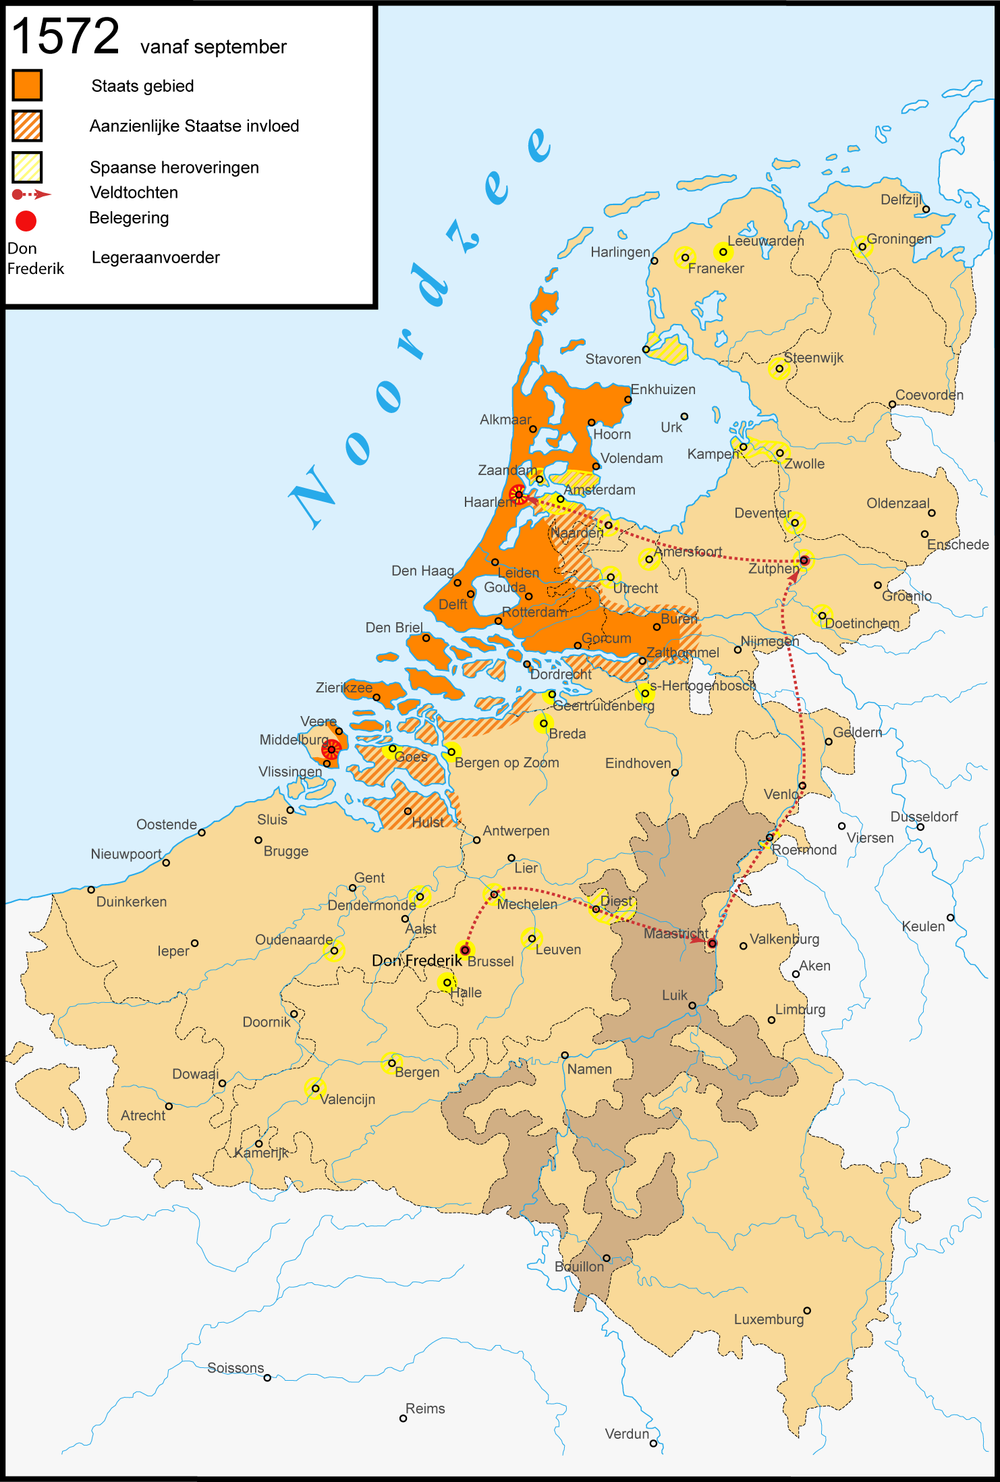 Netherland end of 1572